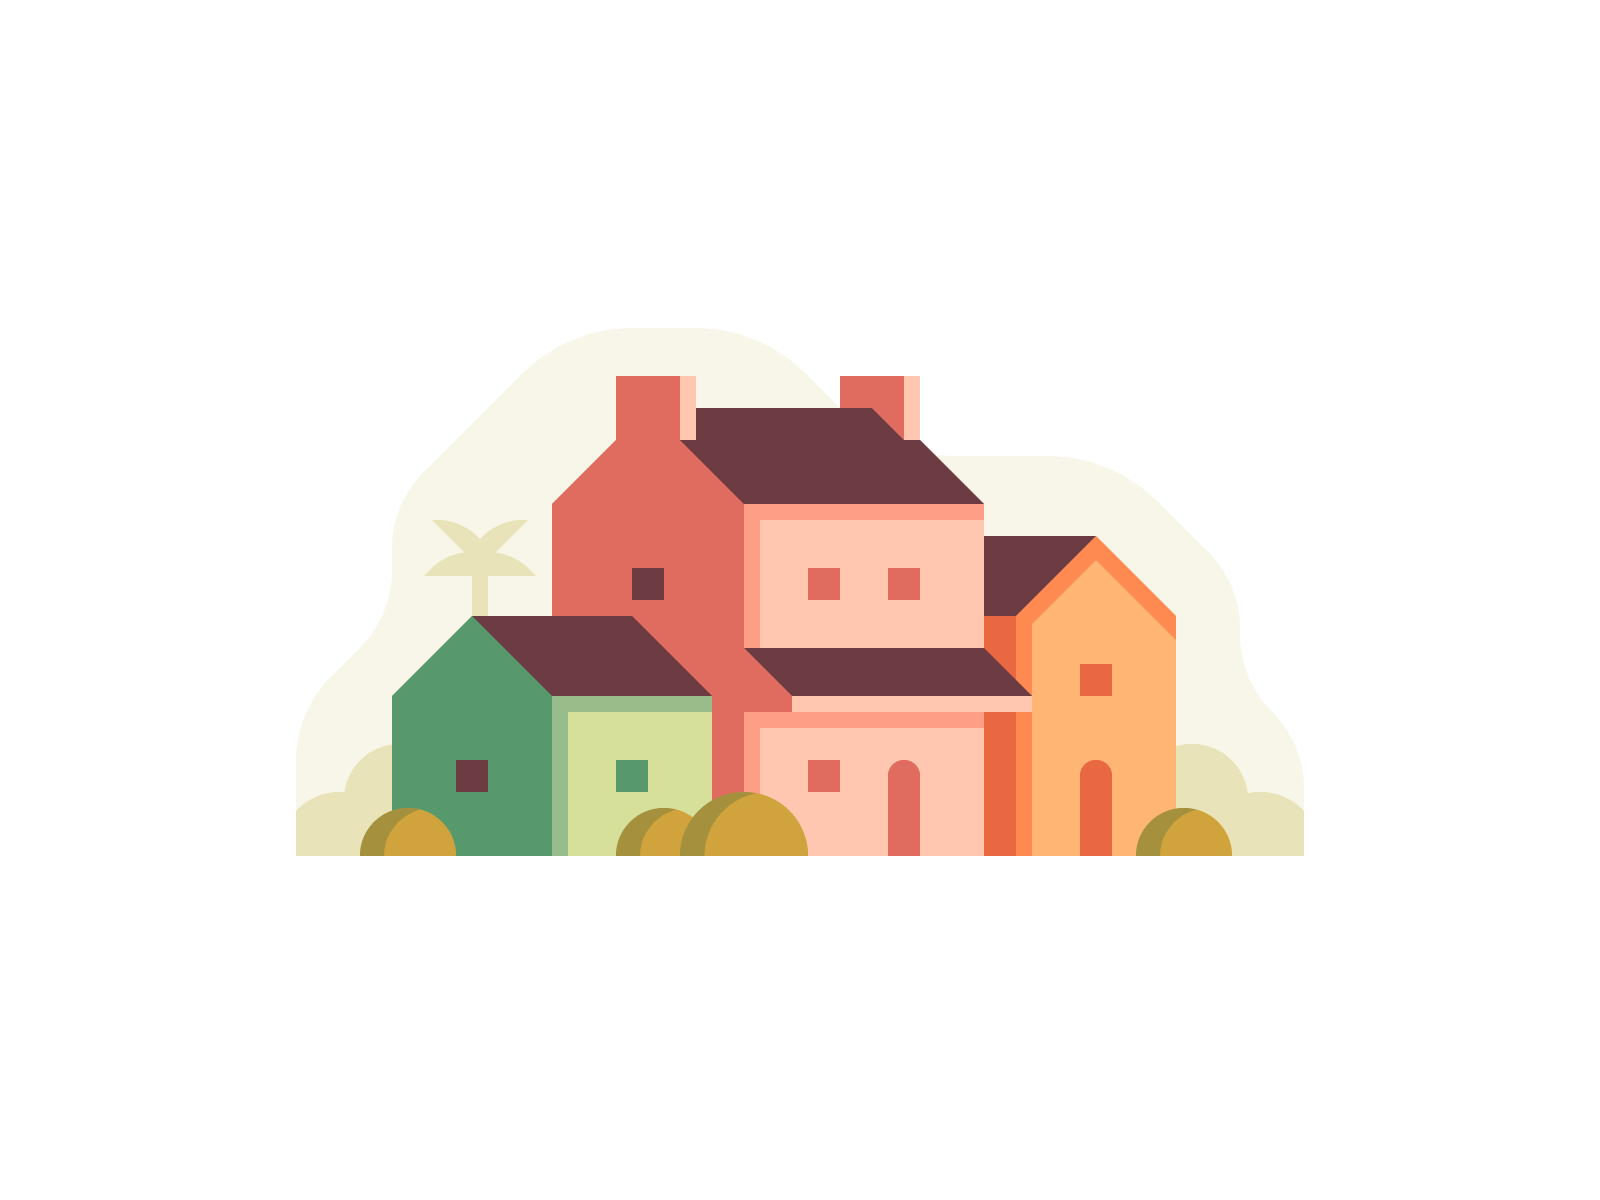 row-buildings-dribbble-alex-pasquarella_4x.png